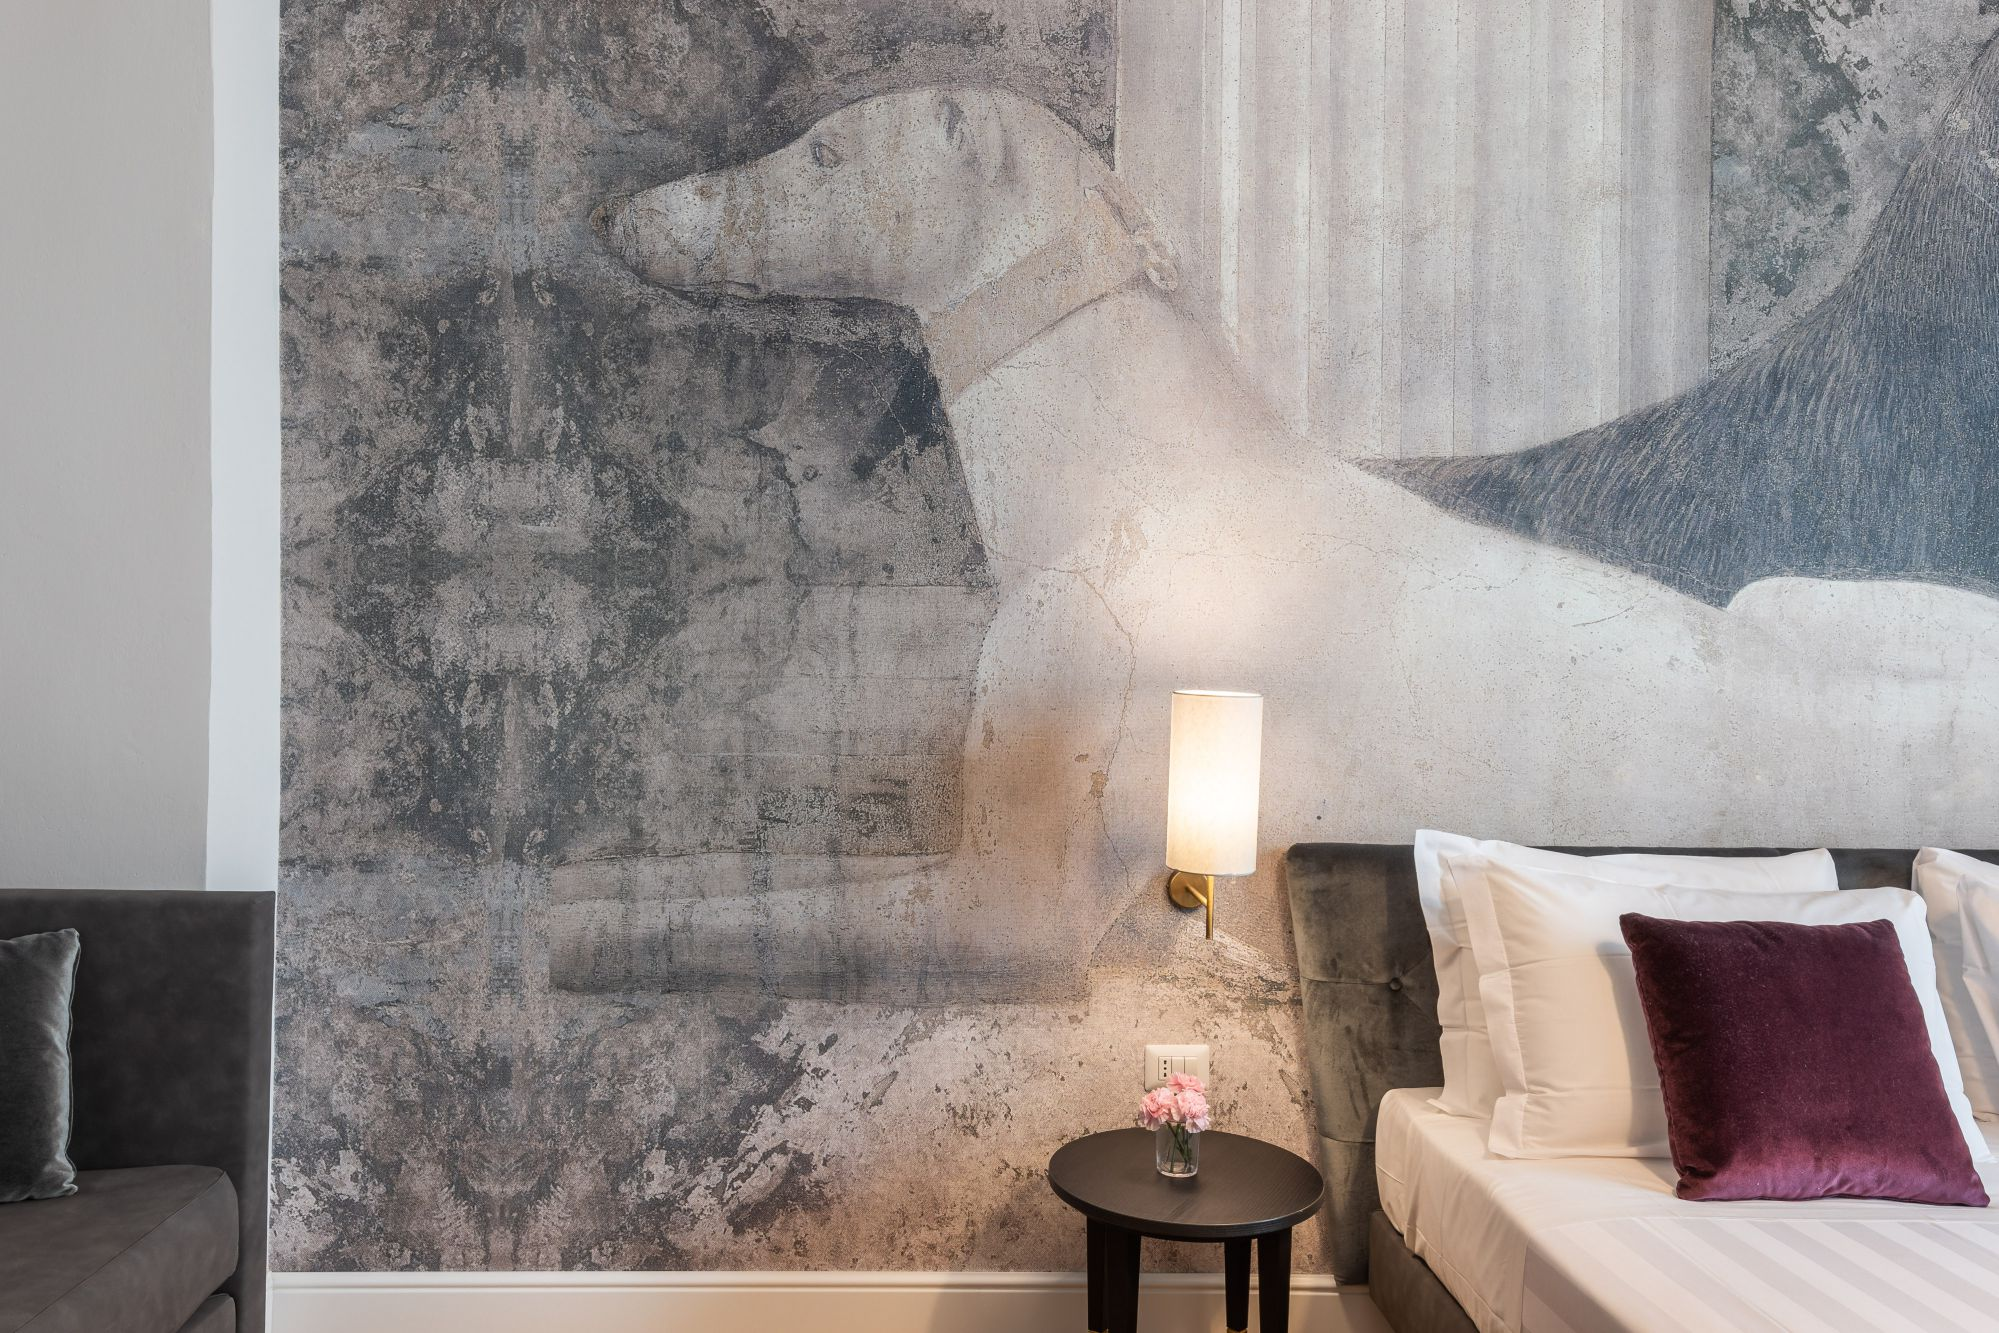 A detail of the deluxe room decorated with Piero della Francesca's  greyhounds